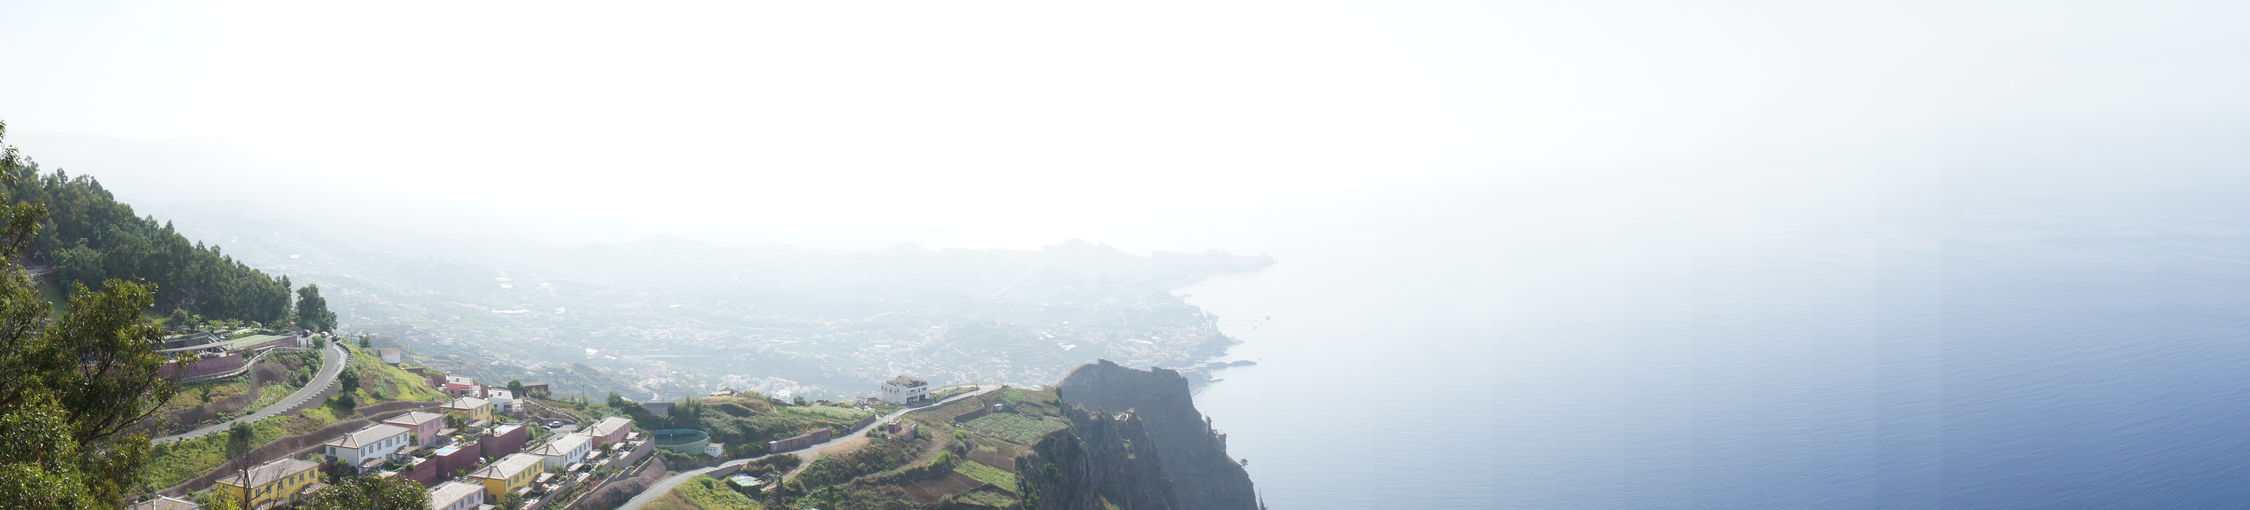 Portugal Madeira Panoramic Photography Sony A6000